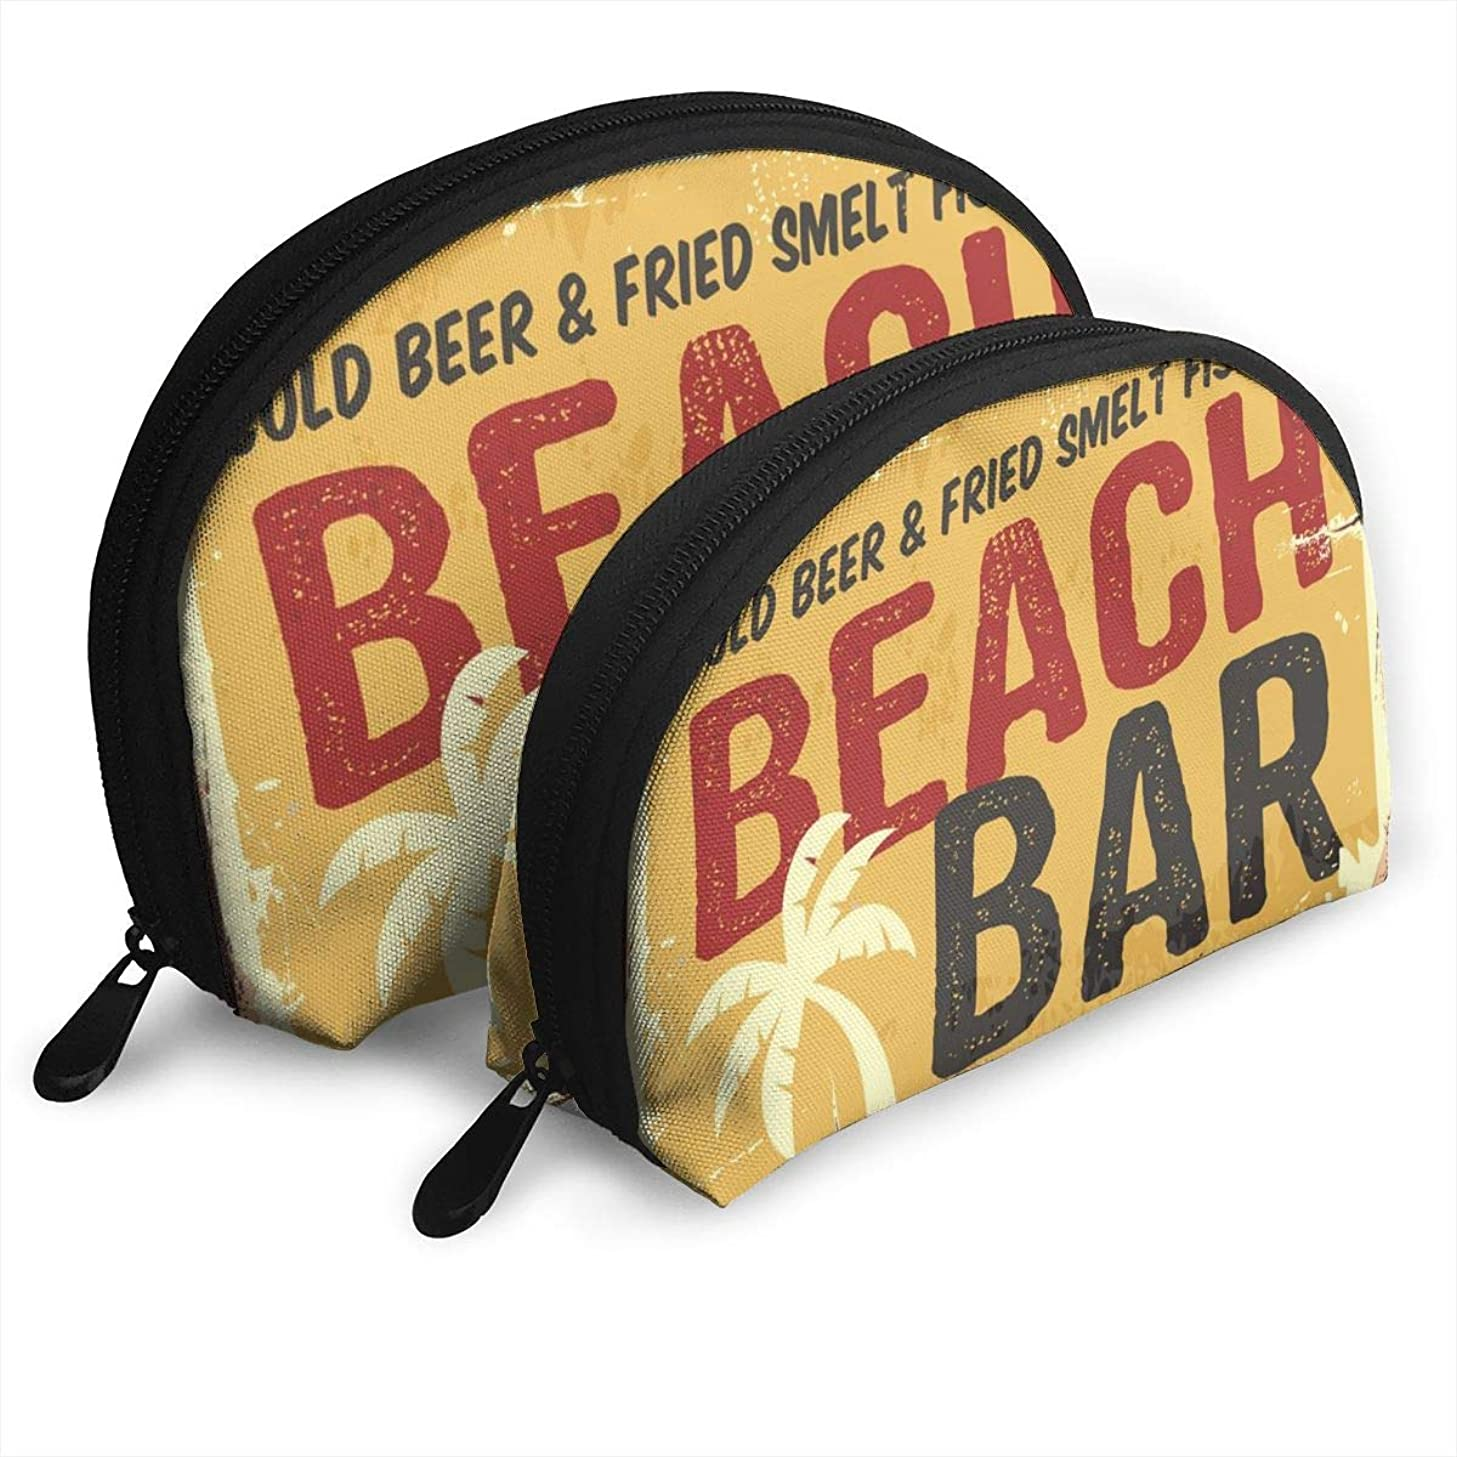 BIANGBIANGM Beach Bar Retro Damaged Rusty Sign Board 2Pcs Portable Cosmetic Bag,Shell Portable Bags Clutch Pouch Cosmetic Makeup Bag Pouch,Toiletry Bag,Mini Travel Cosmetic Bag for Women Girls